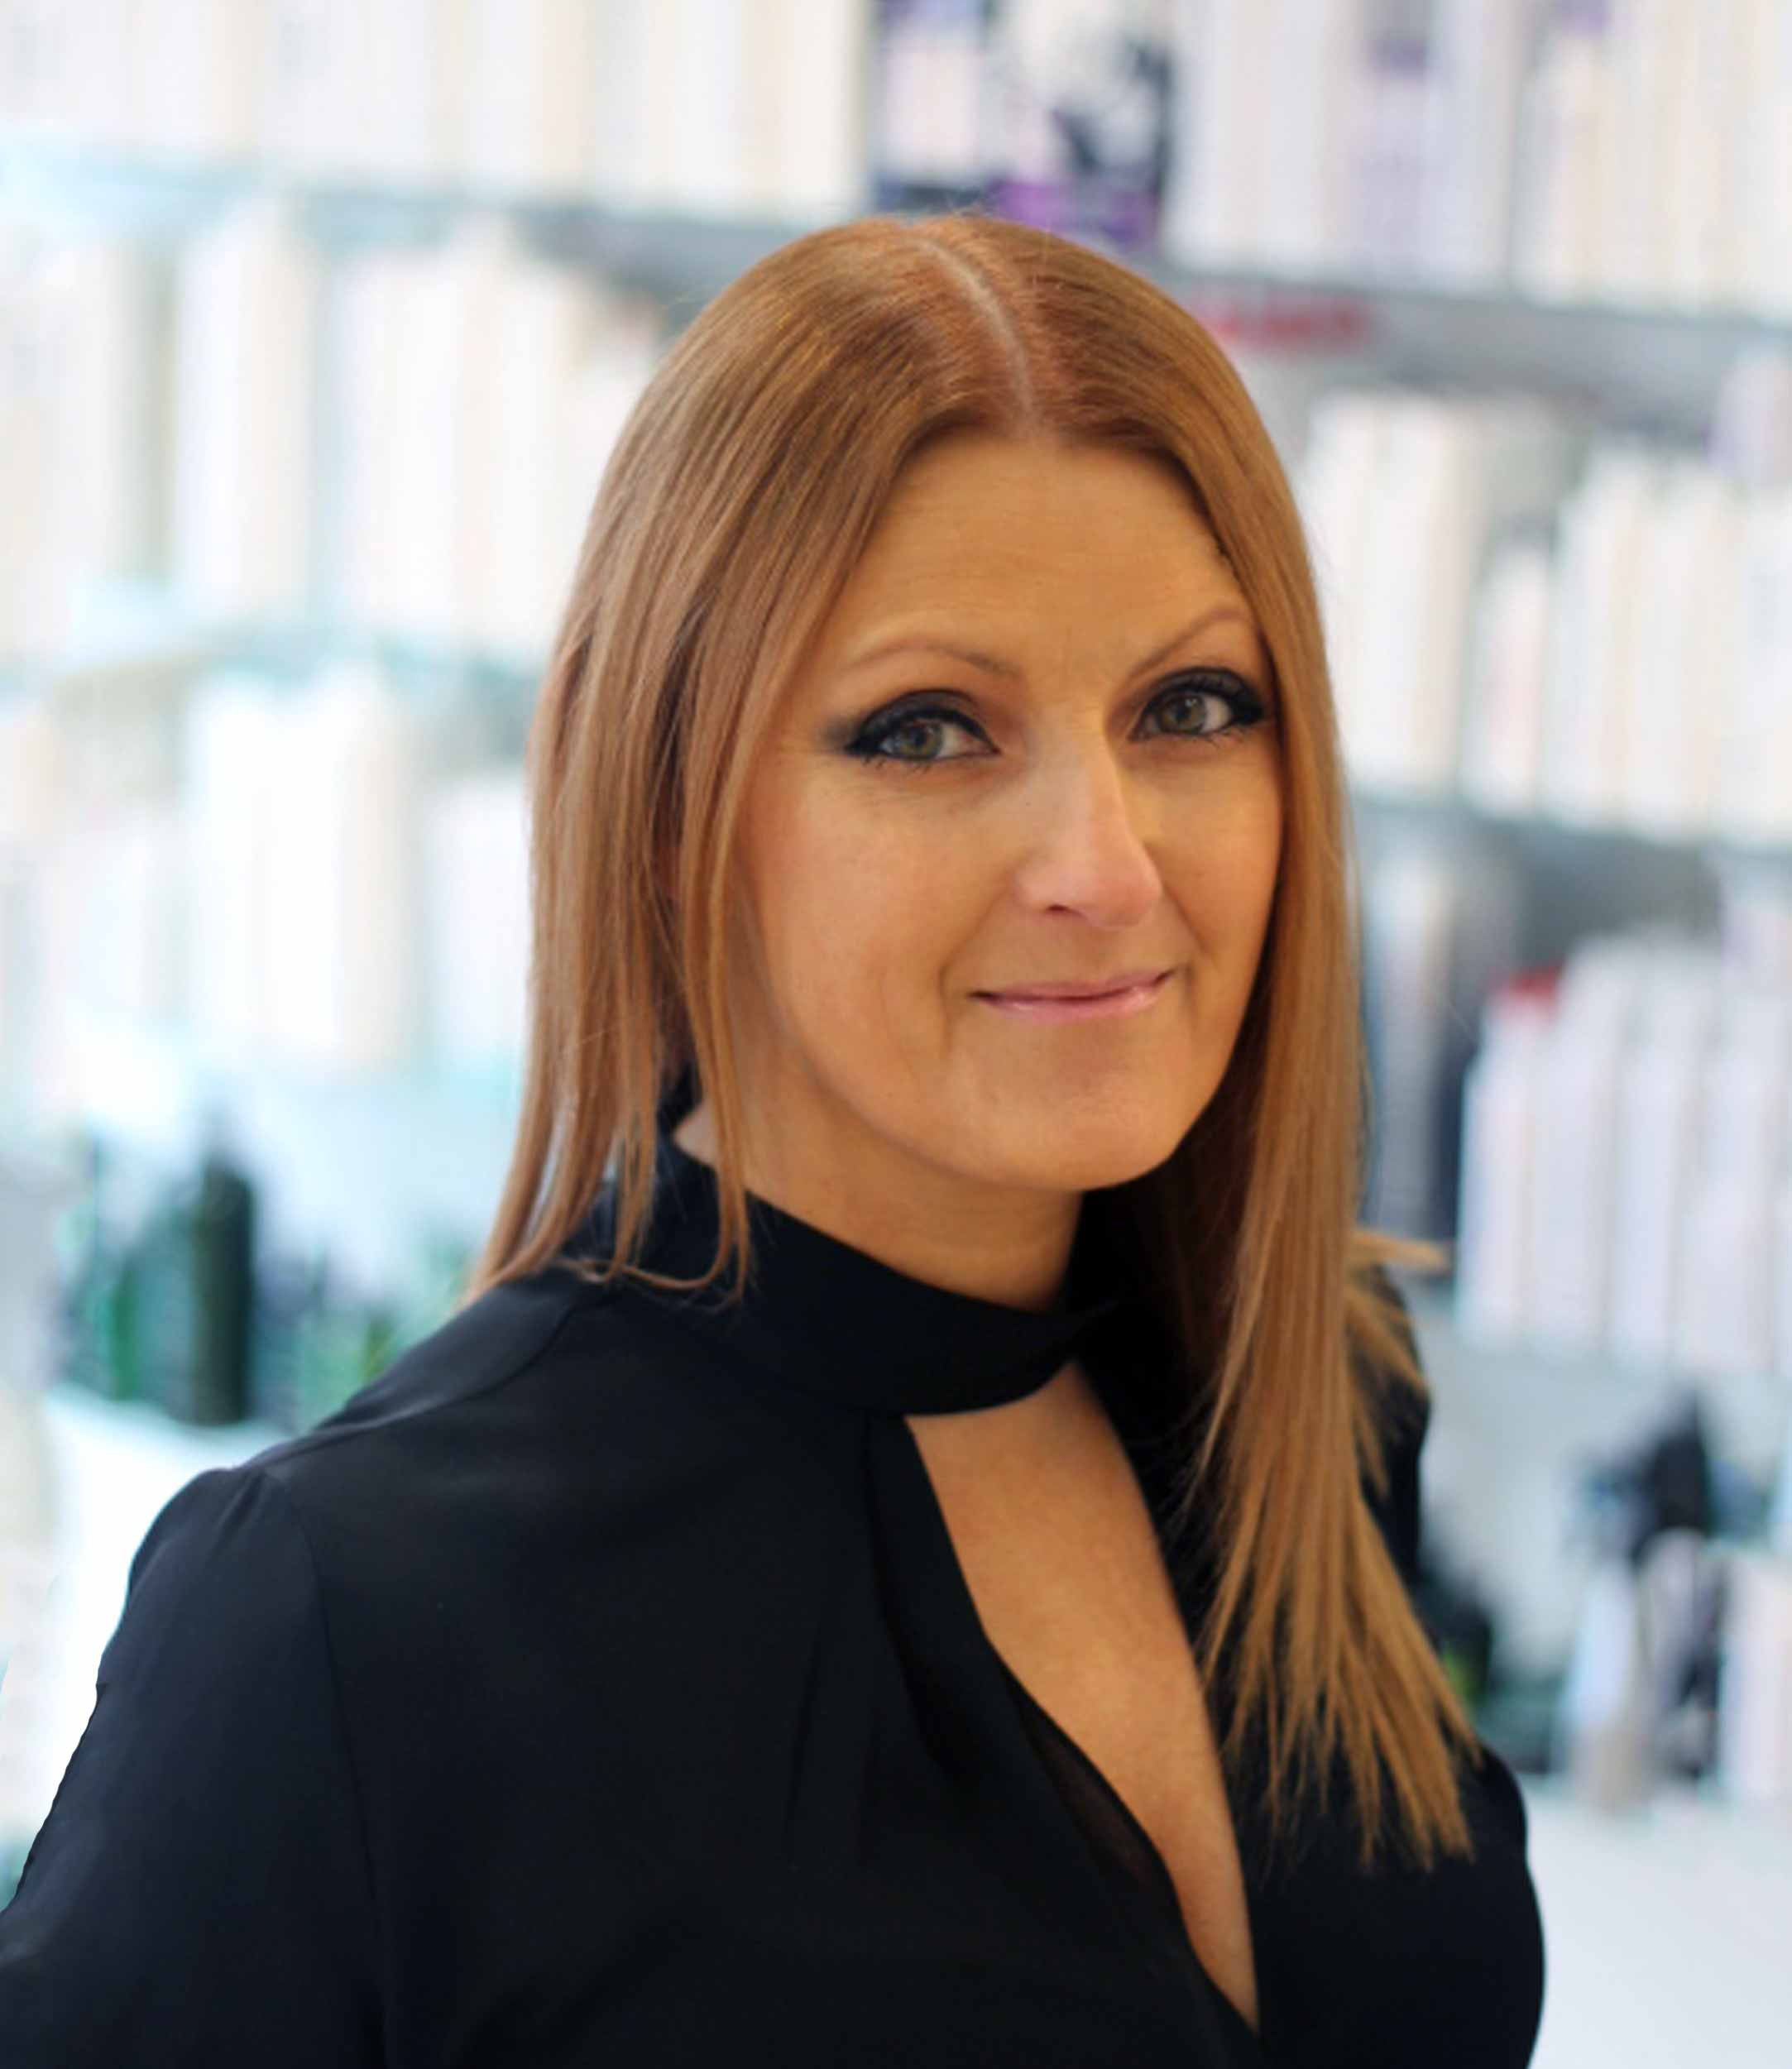 Beverley  - Director, a member of the Team since 1990 and the most experienced member of the styling team.